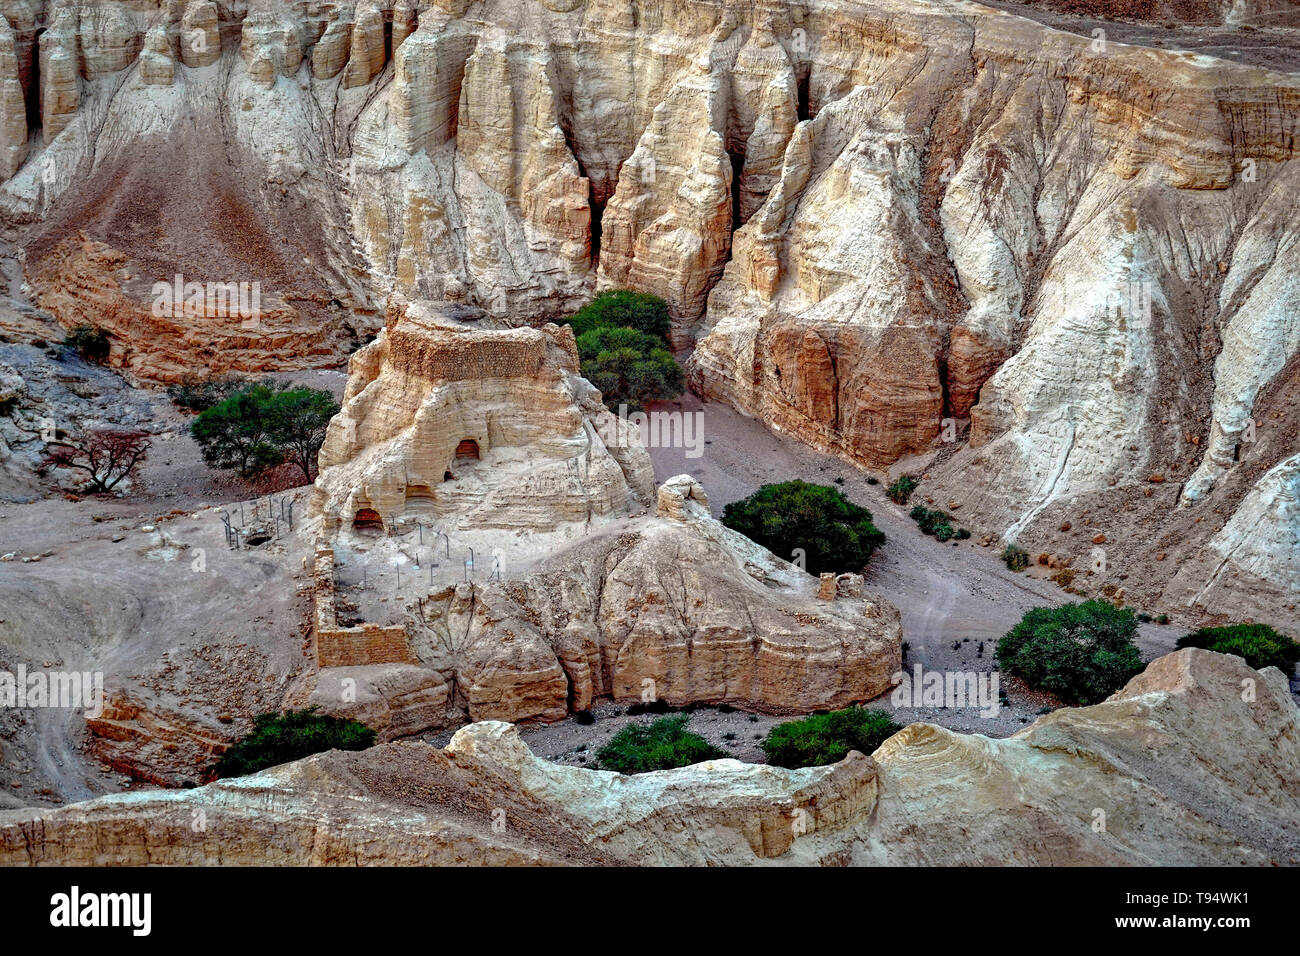 Marl stone formations. Eroded cliffs made of marl. Marl is a calcium carbonate-rich, mudstone formed from sedimentary deposits. Photographed in Israel Stock Photo